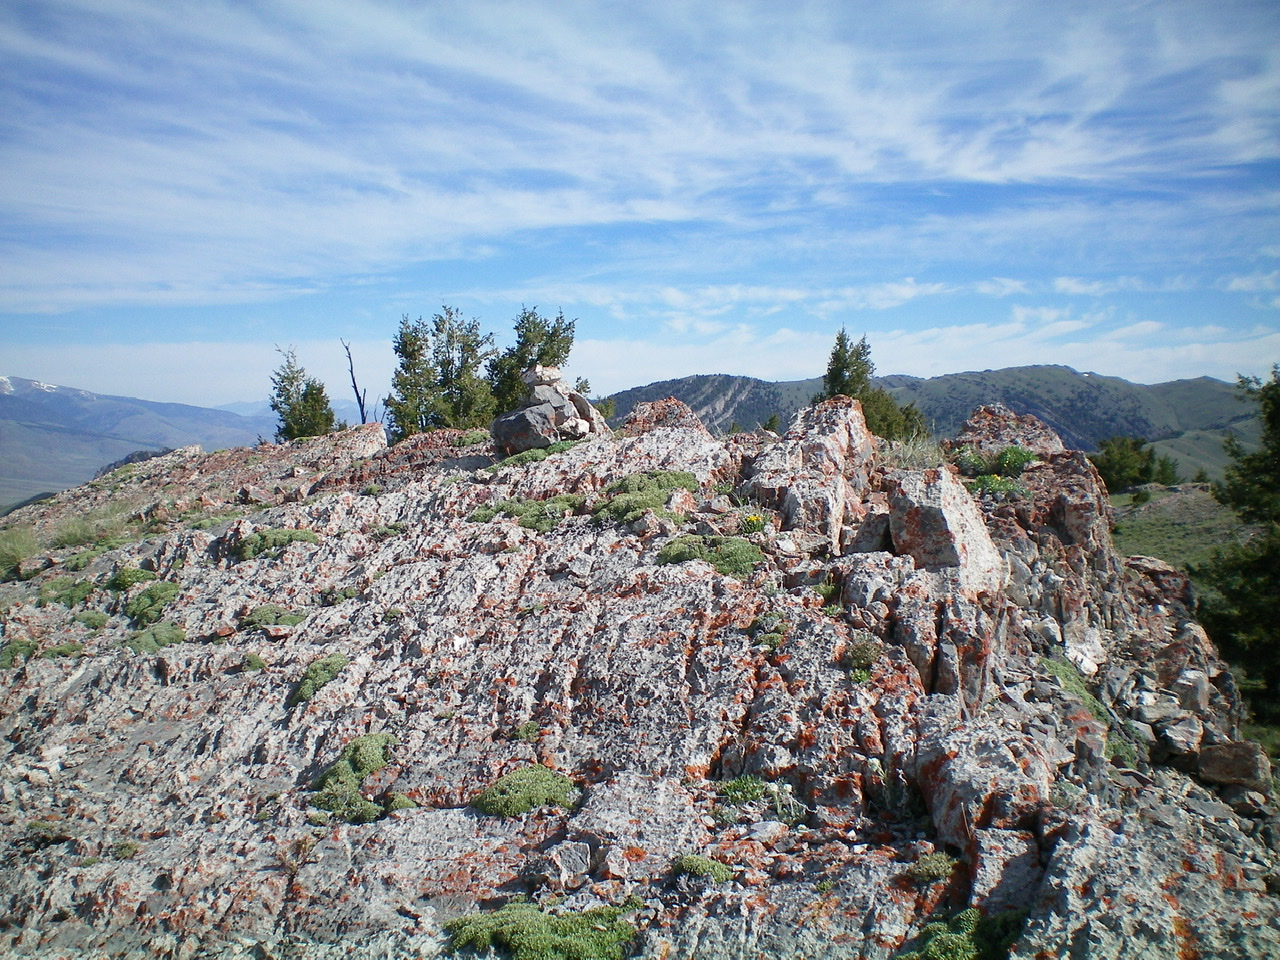 The rocky summit area of Peak 8603 with its small summit cairn. Livingston Douglas Photo